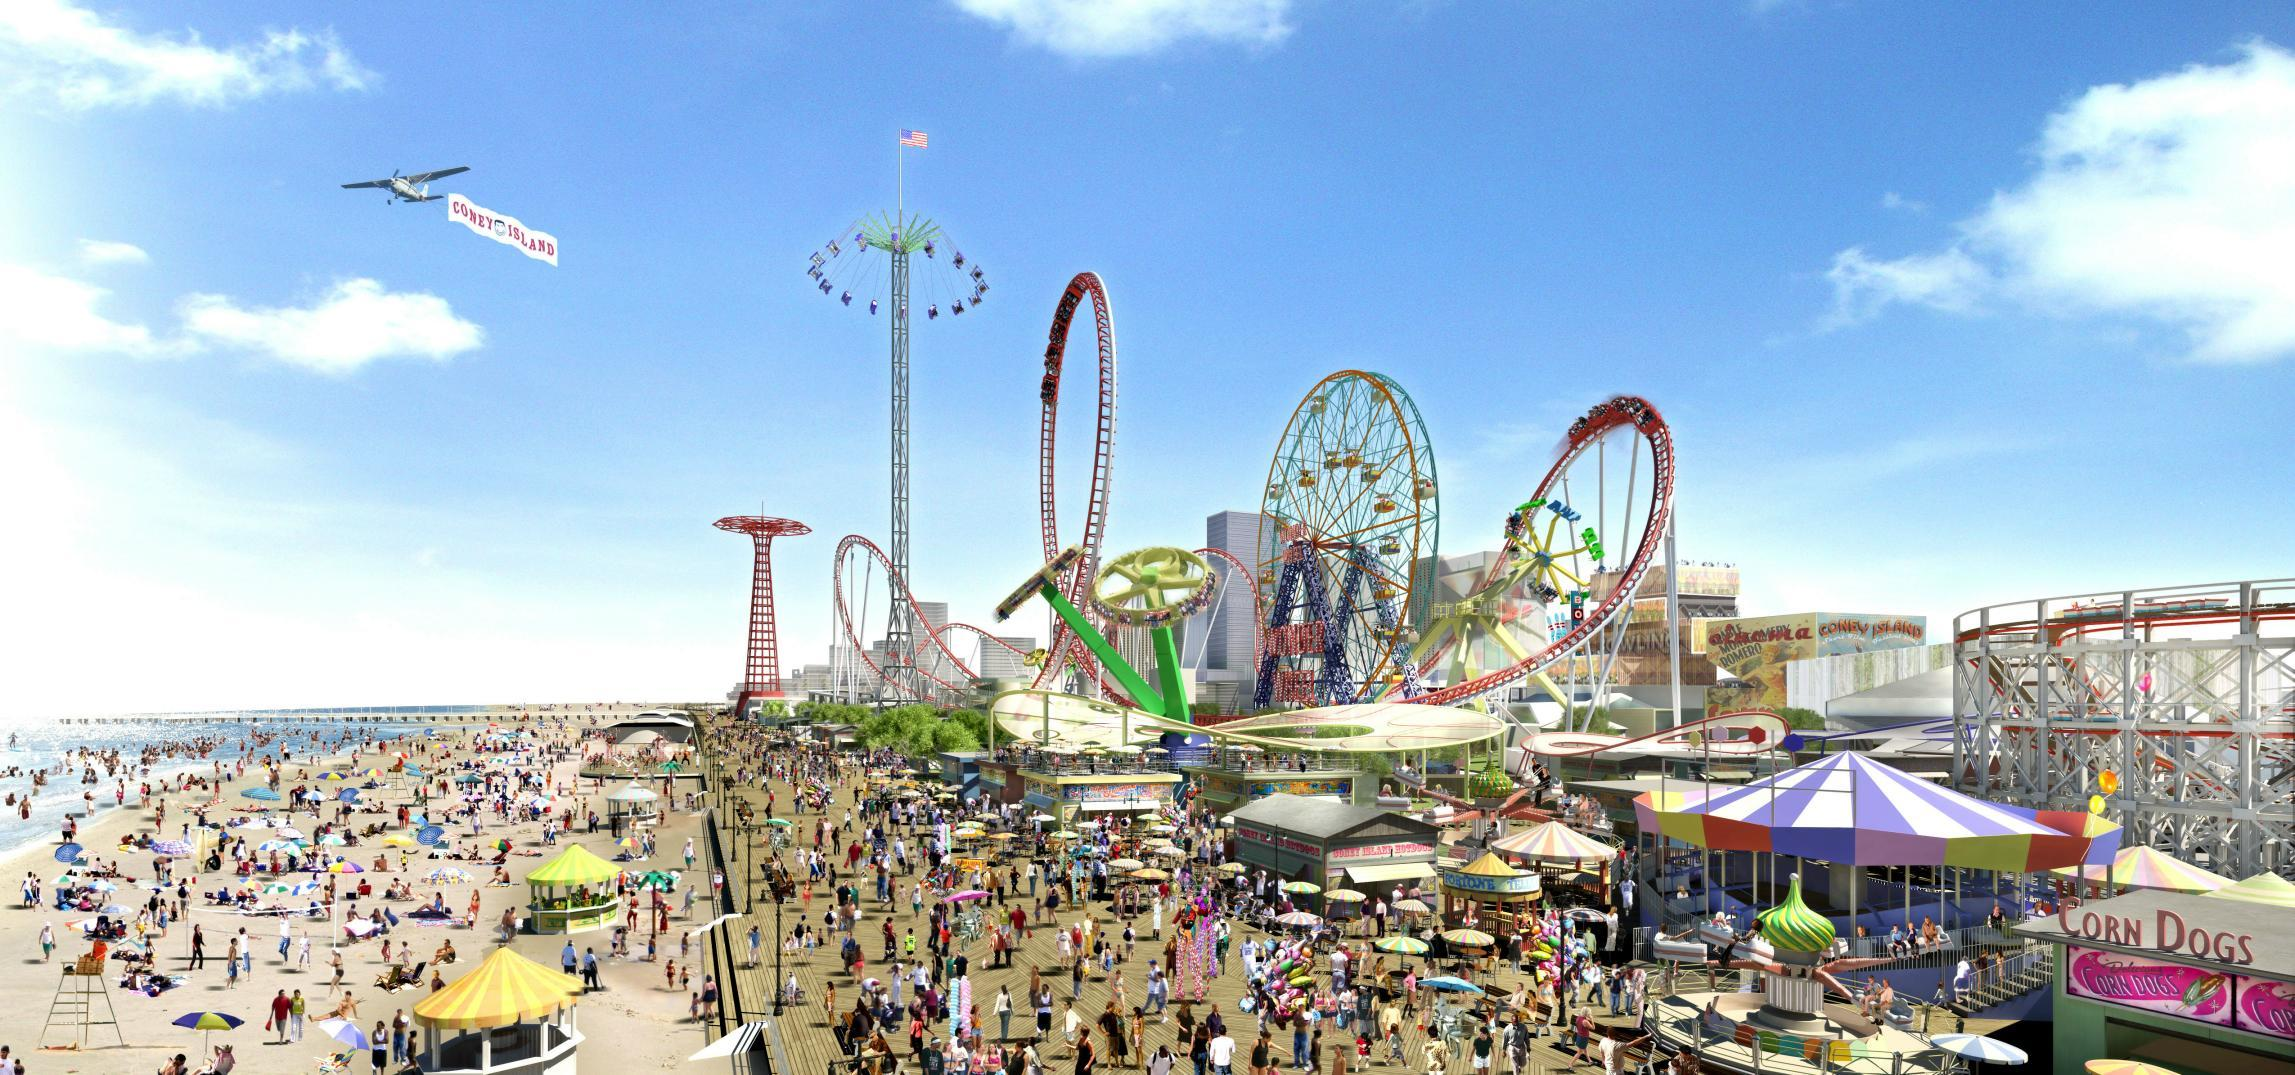 New York Coney Island Redevelopment Page 7